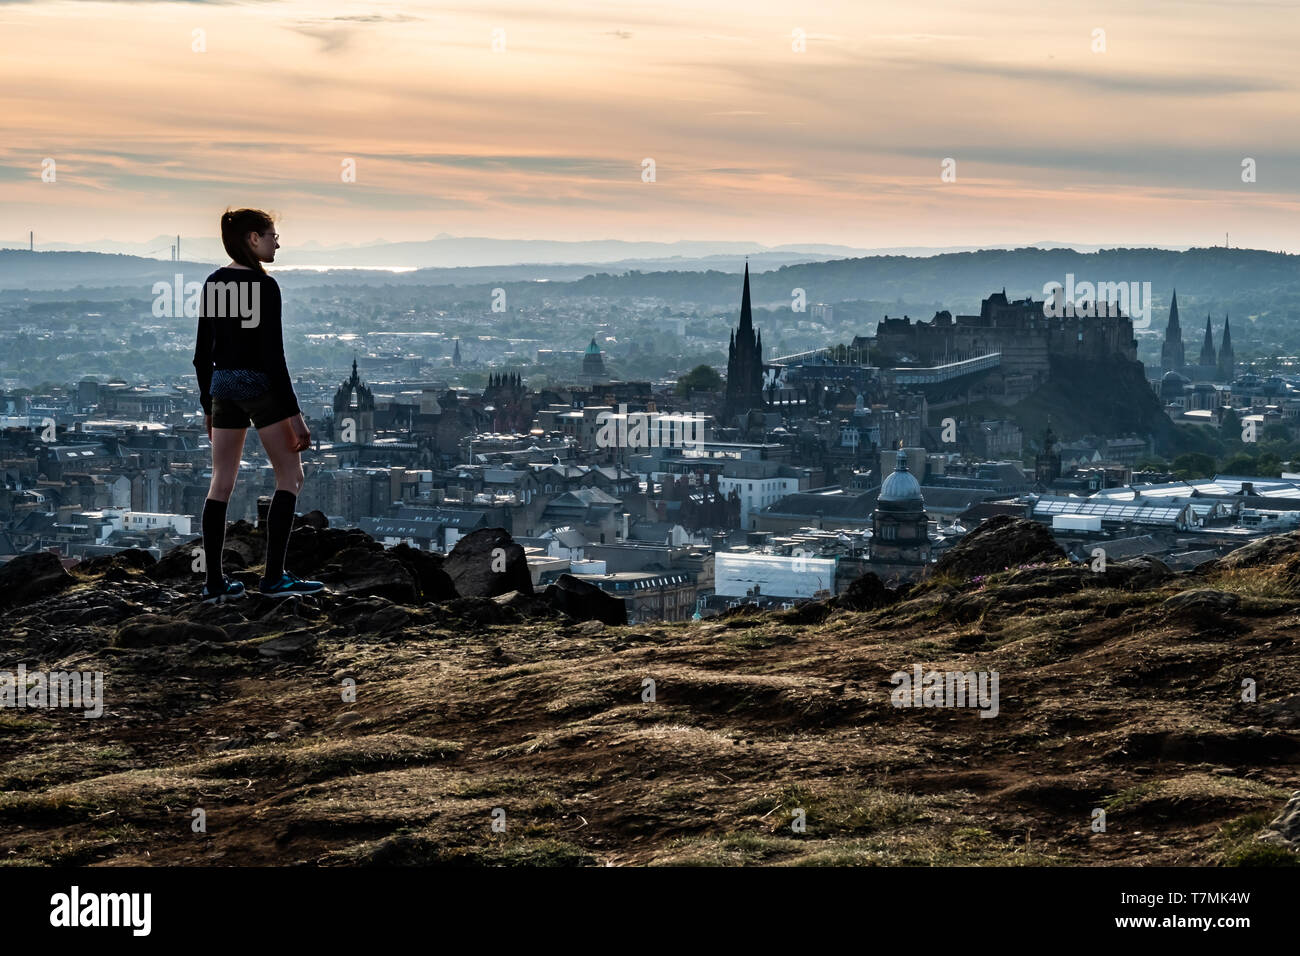 Overlooking Edinburgh from Salisbury Crags, a teen contemplates her future. - Stock Image